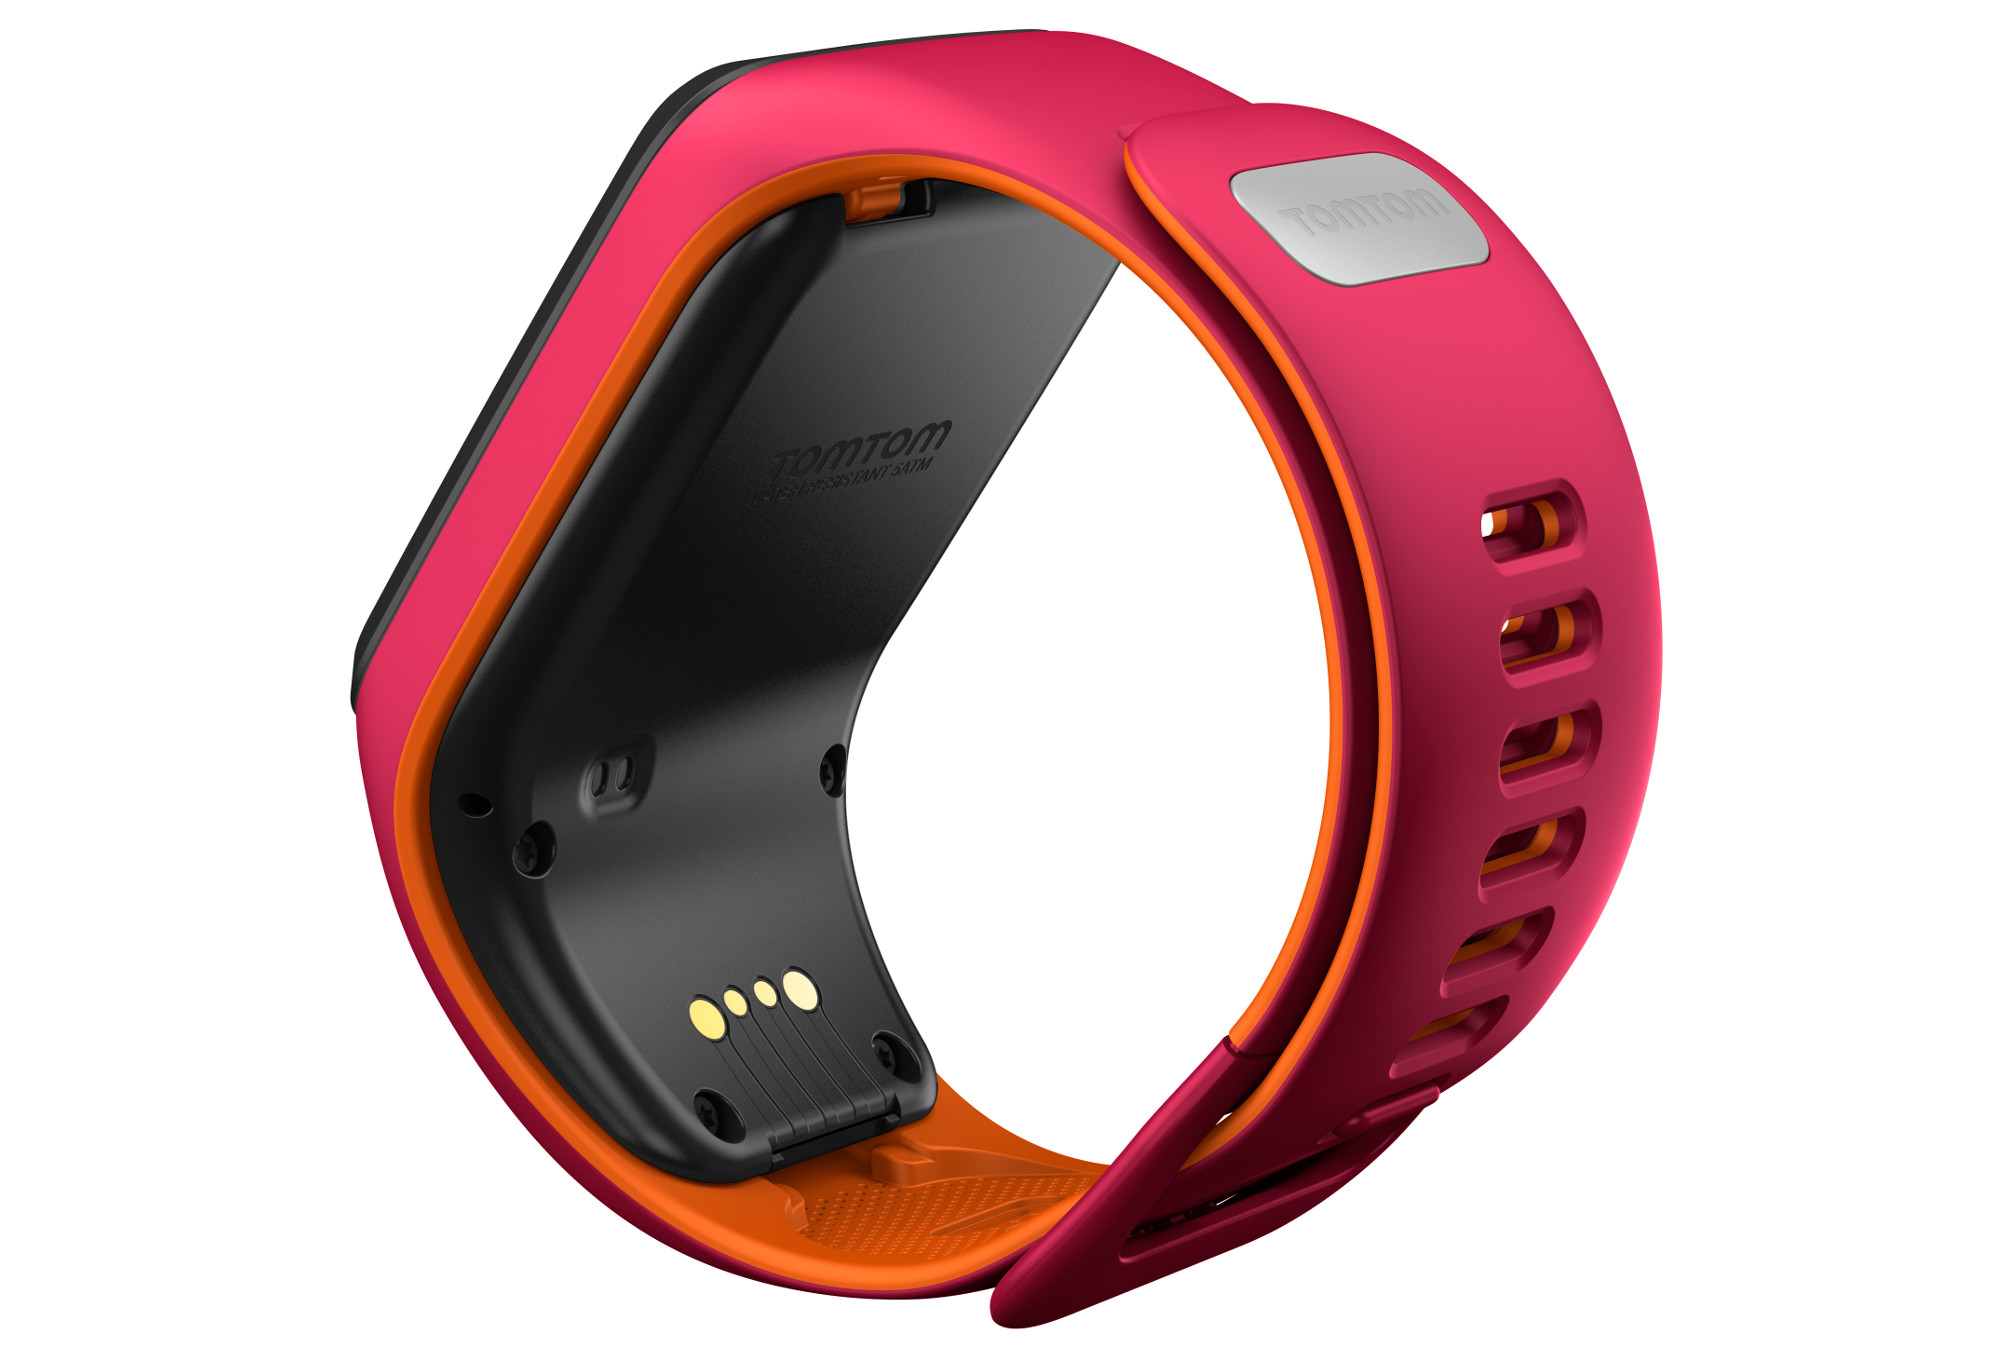 montre gps tomtom runner 3 bracelet fin rose orange. Black Bedroom Furniture Sets. Home Design Ideas